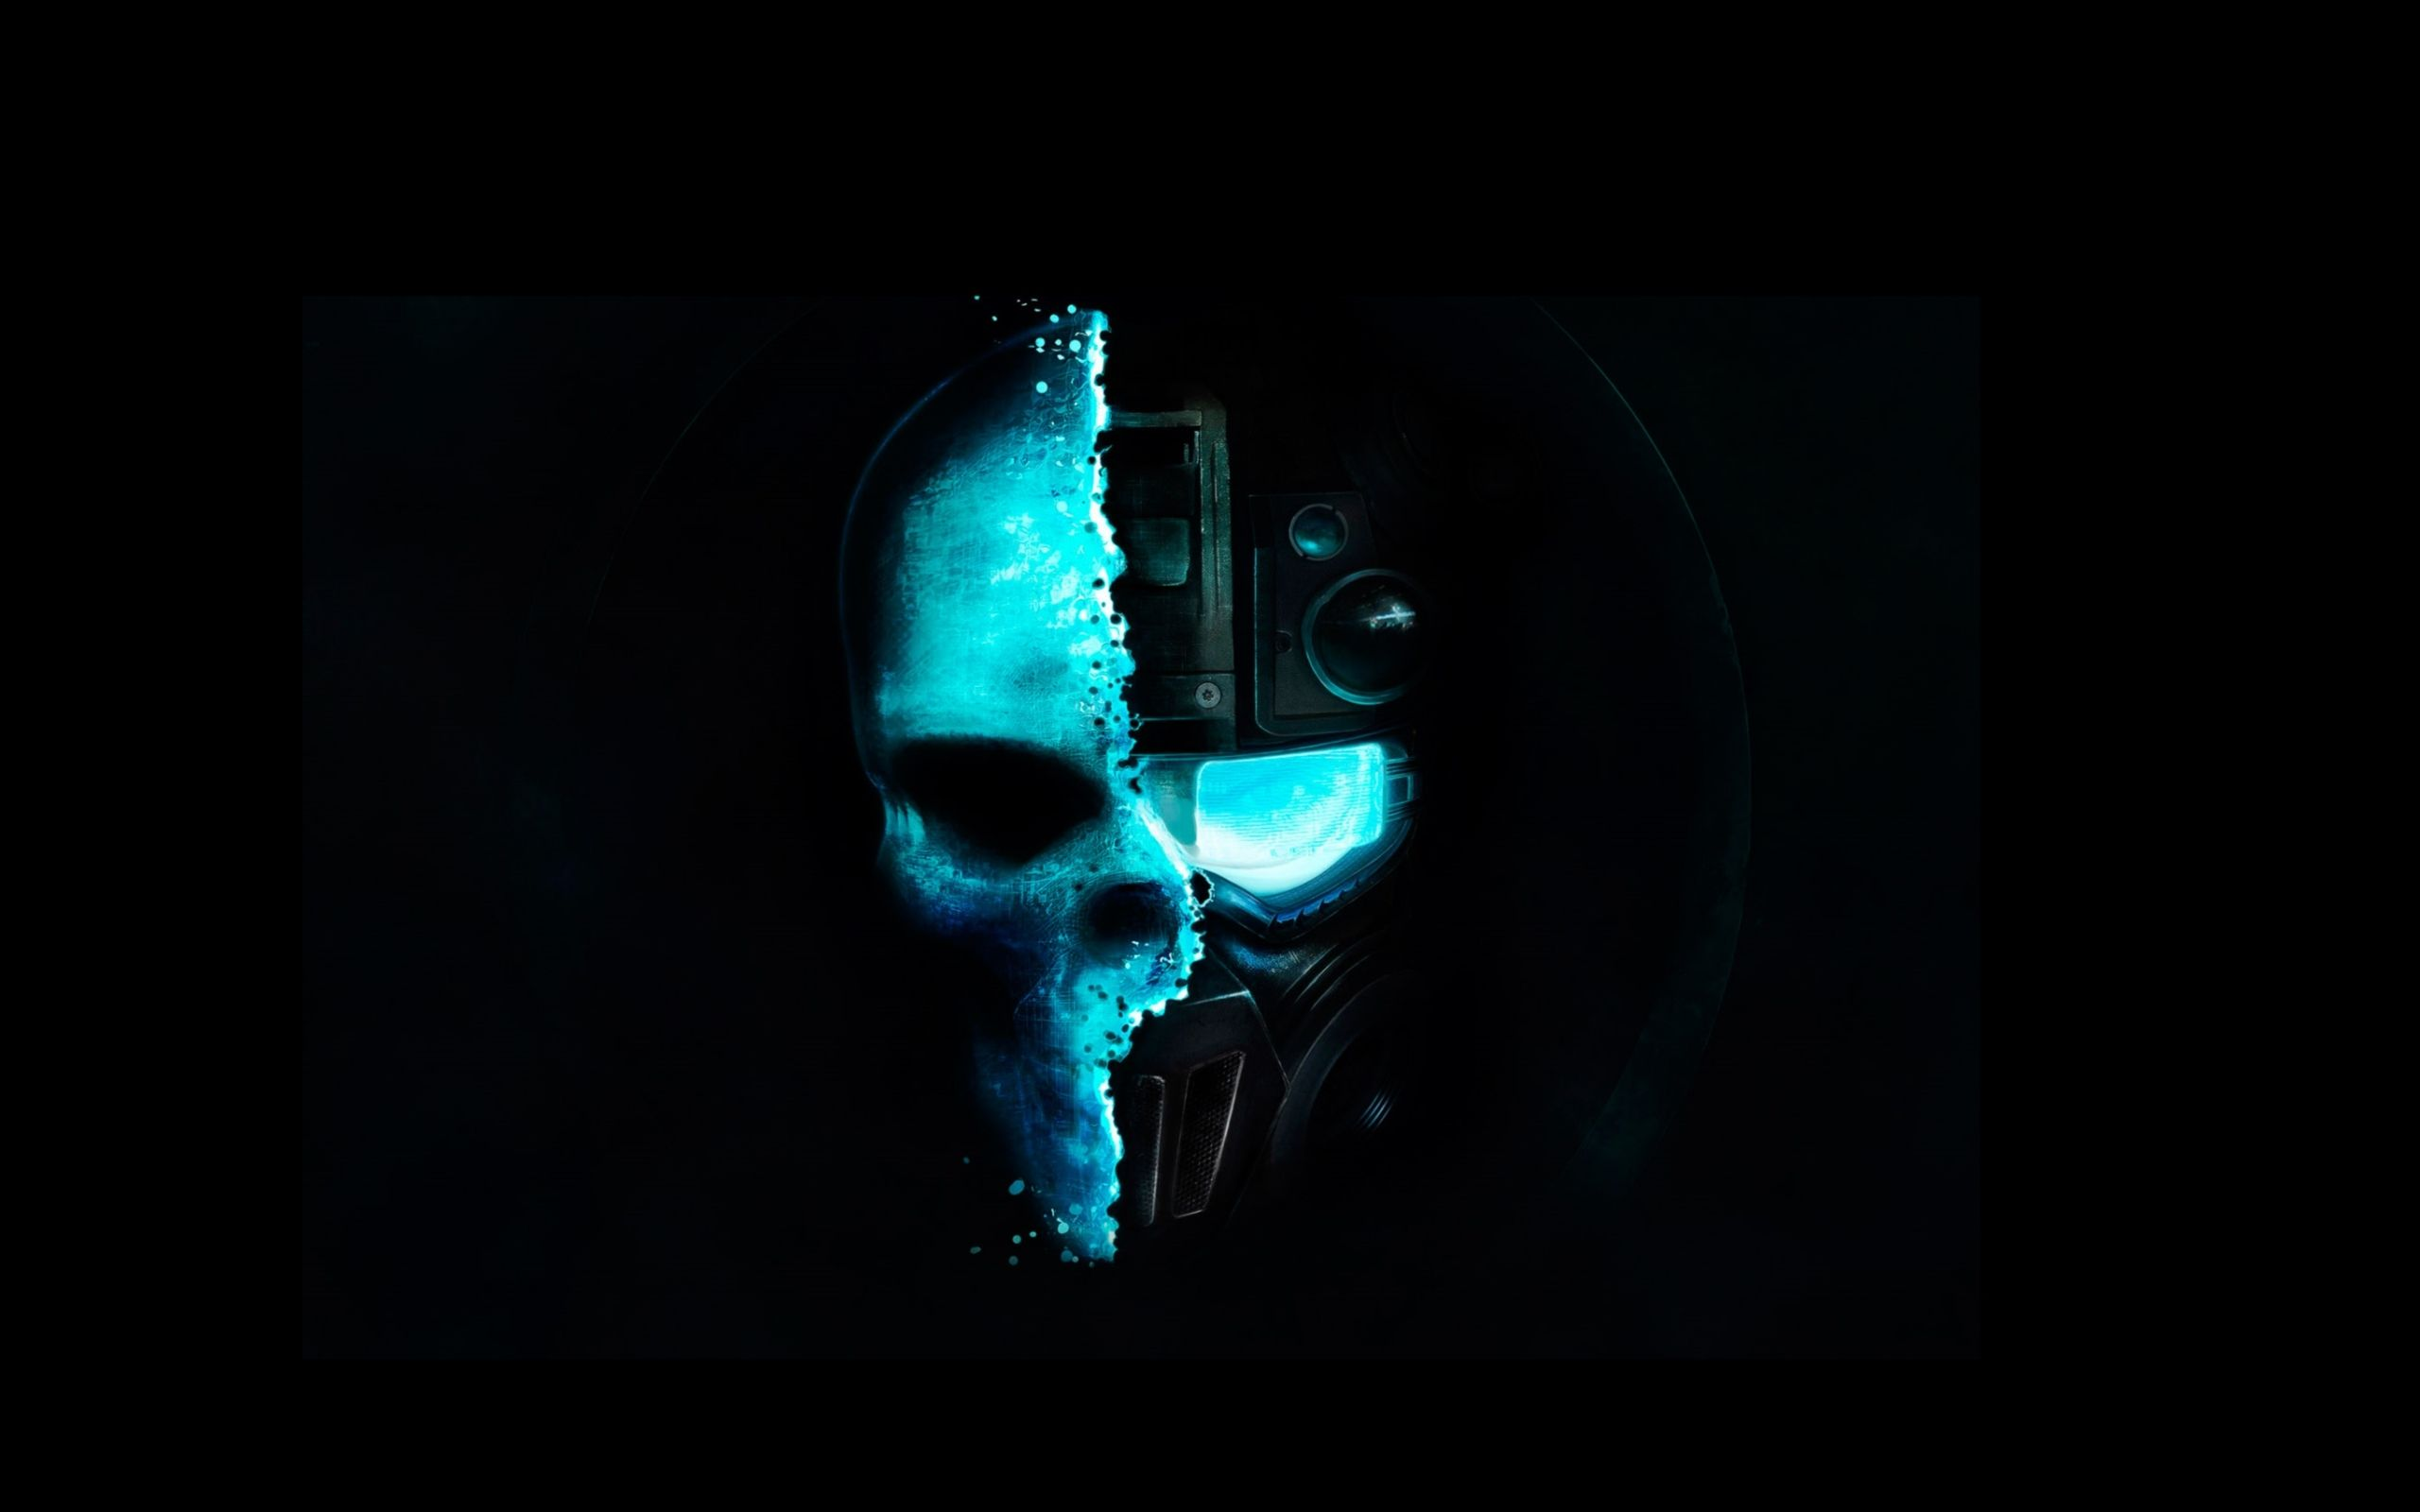 Skull Abstract Hd Wallpaper 3d Animated Hd Wallpapers Free